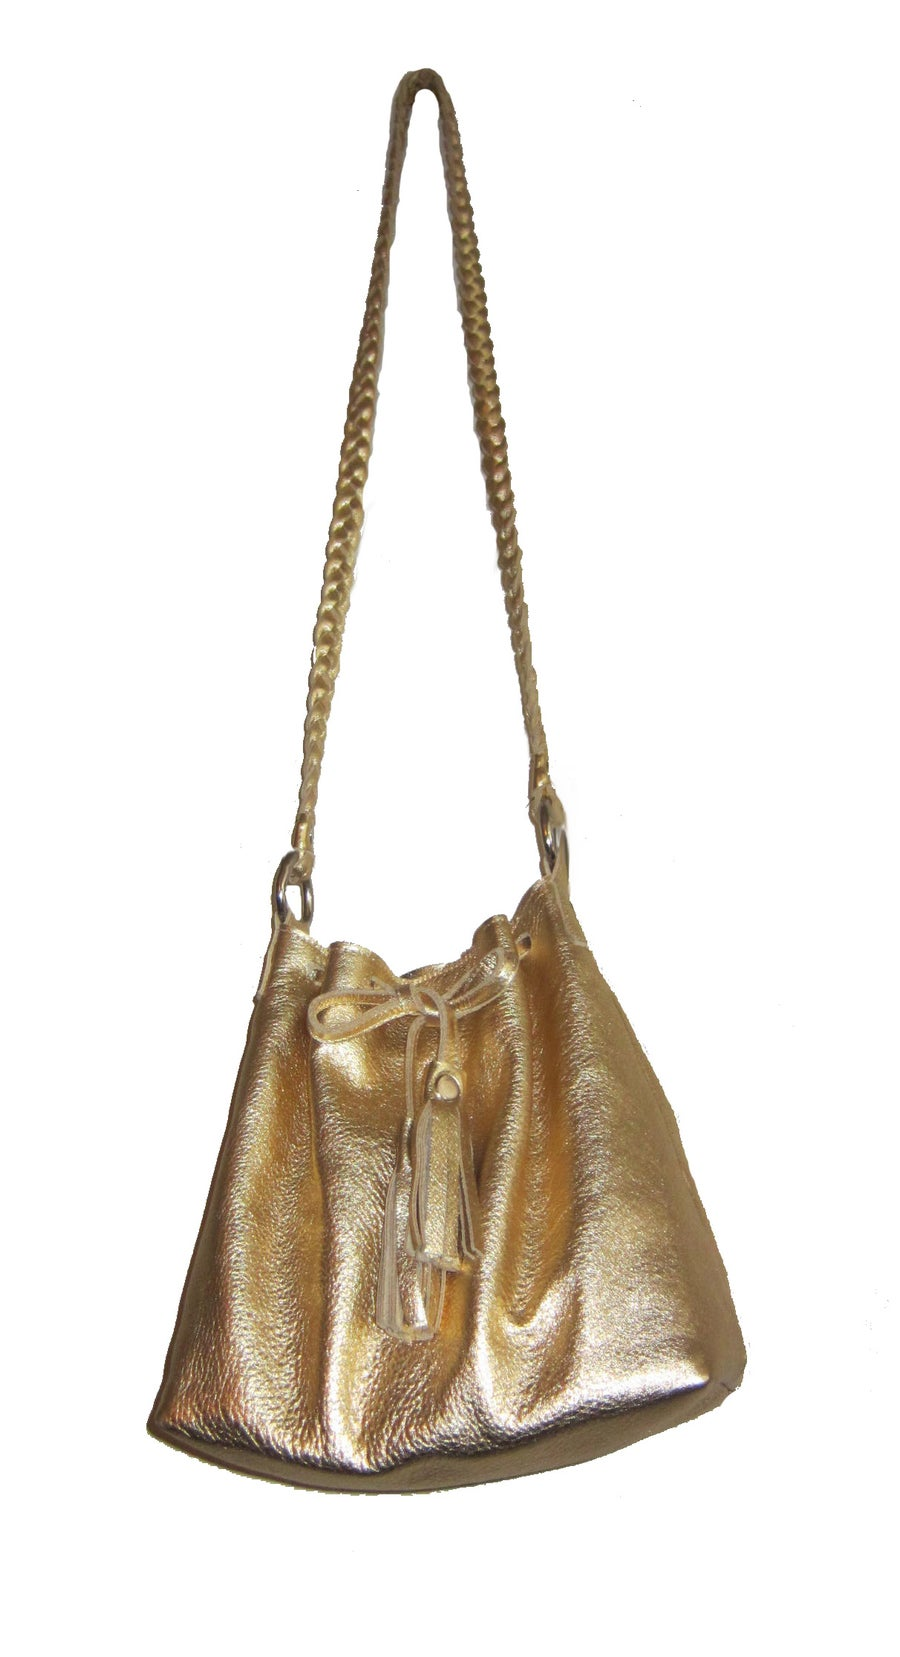 Image of Wildflower Cross-body Bucket Bag ~LG~